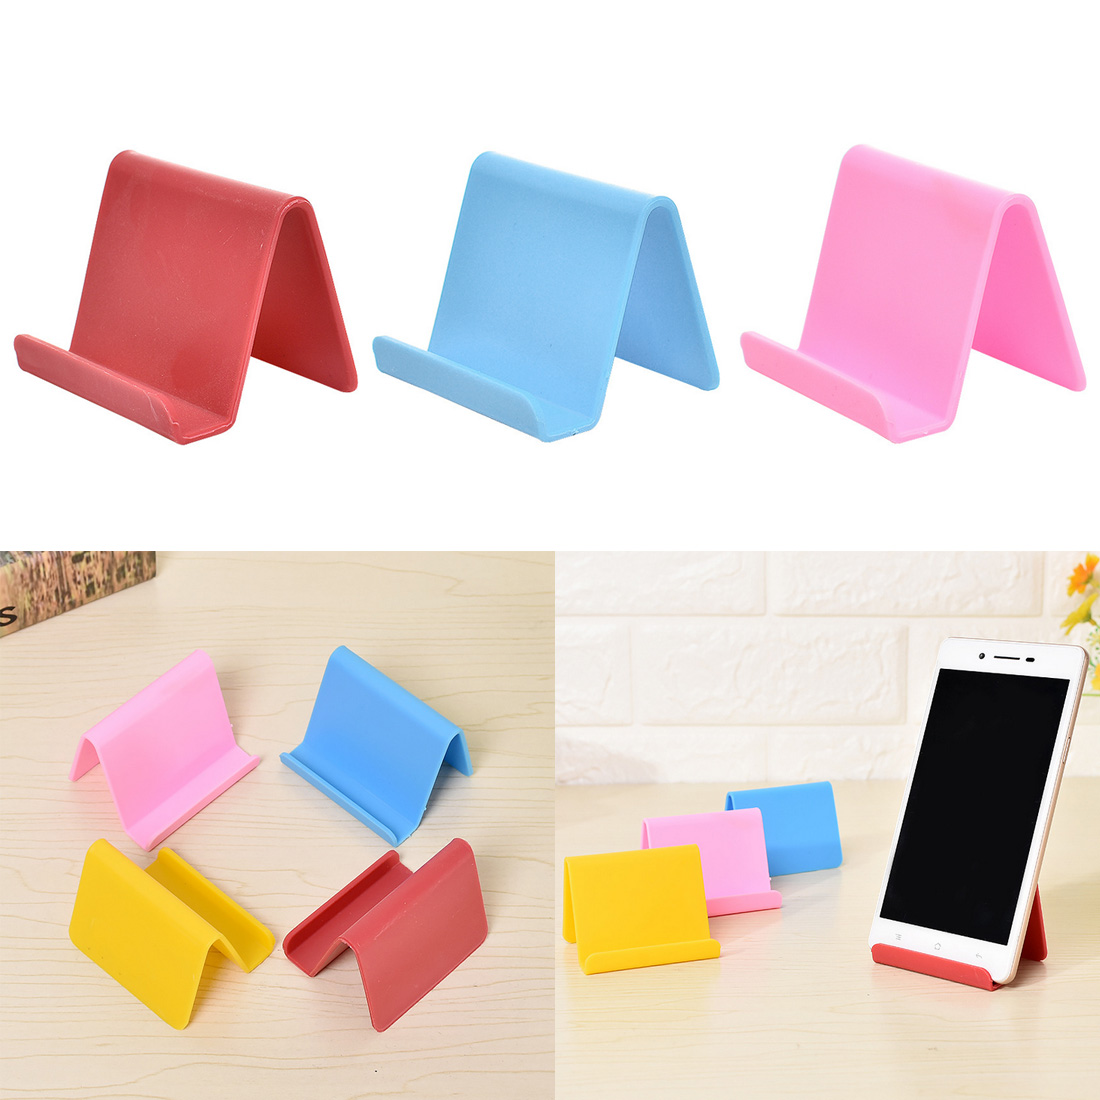 Us 1 14 38 Off Plastic Phone Holder Fixed Candy Color Kitchen Organizer Mini Portable Business Card Mobile Stand Household In